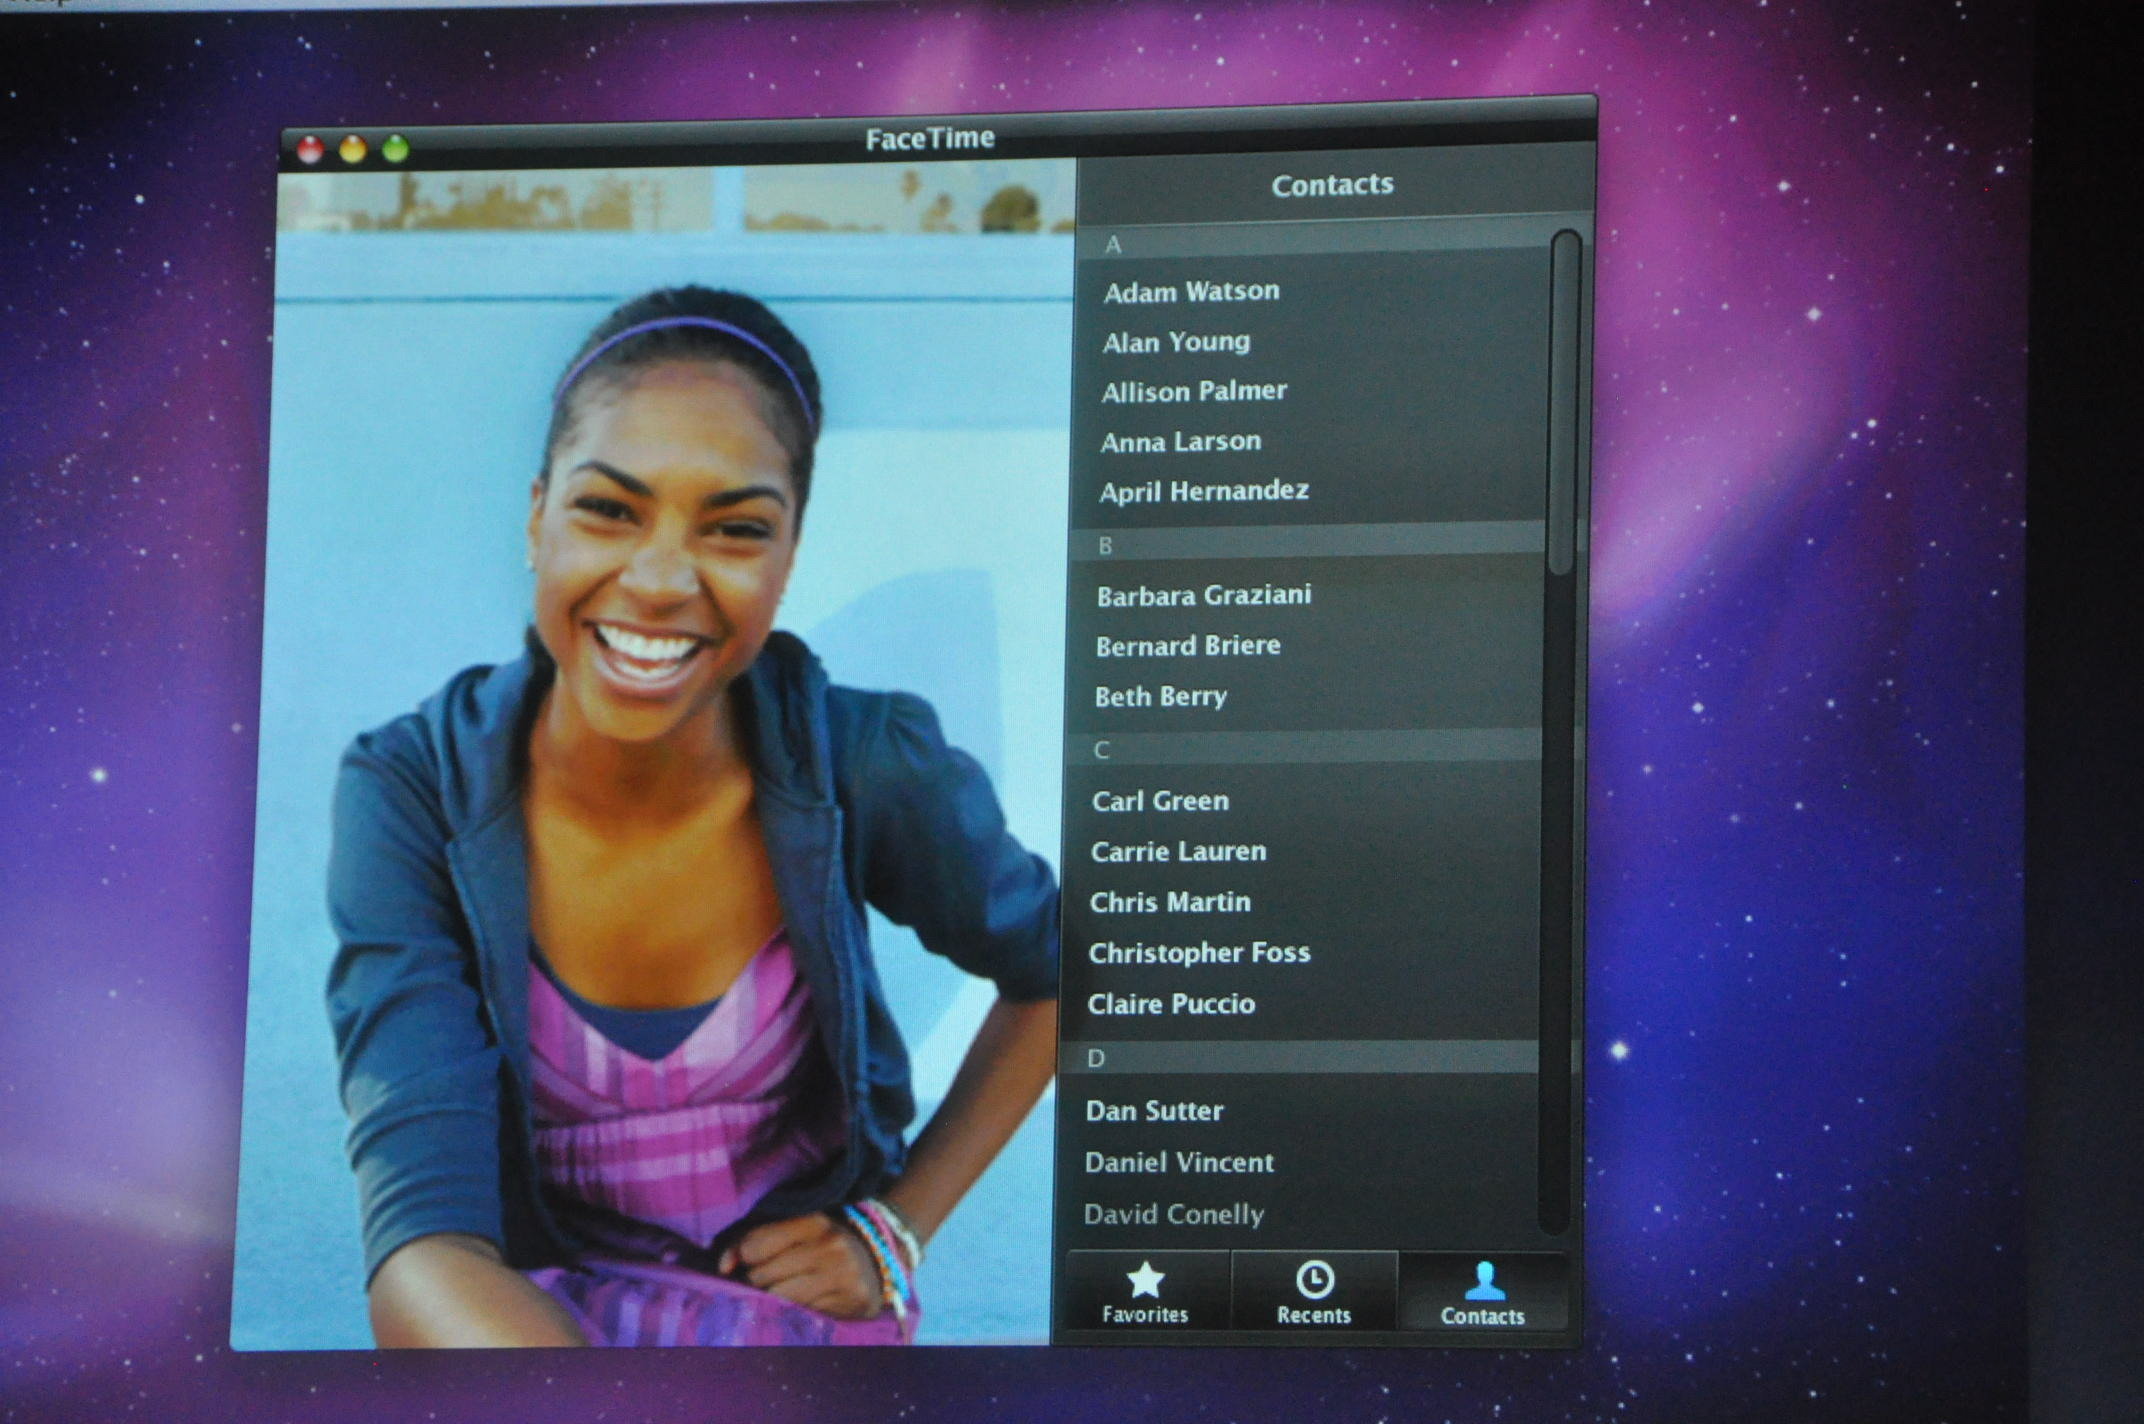 FaceTime demo on Mac